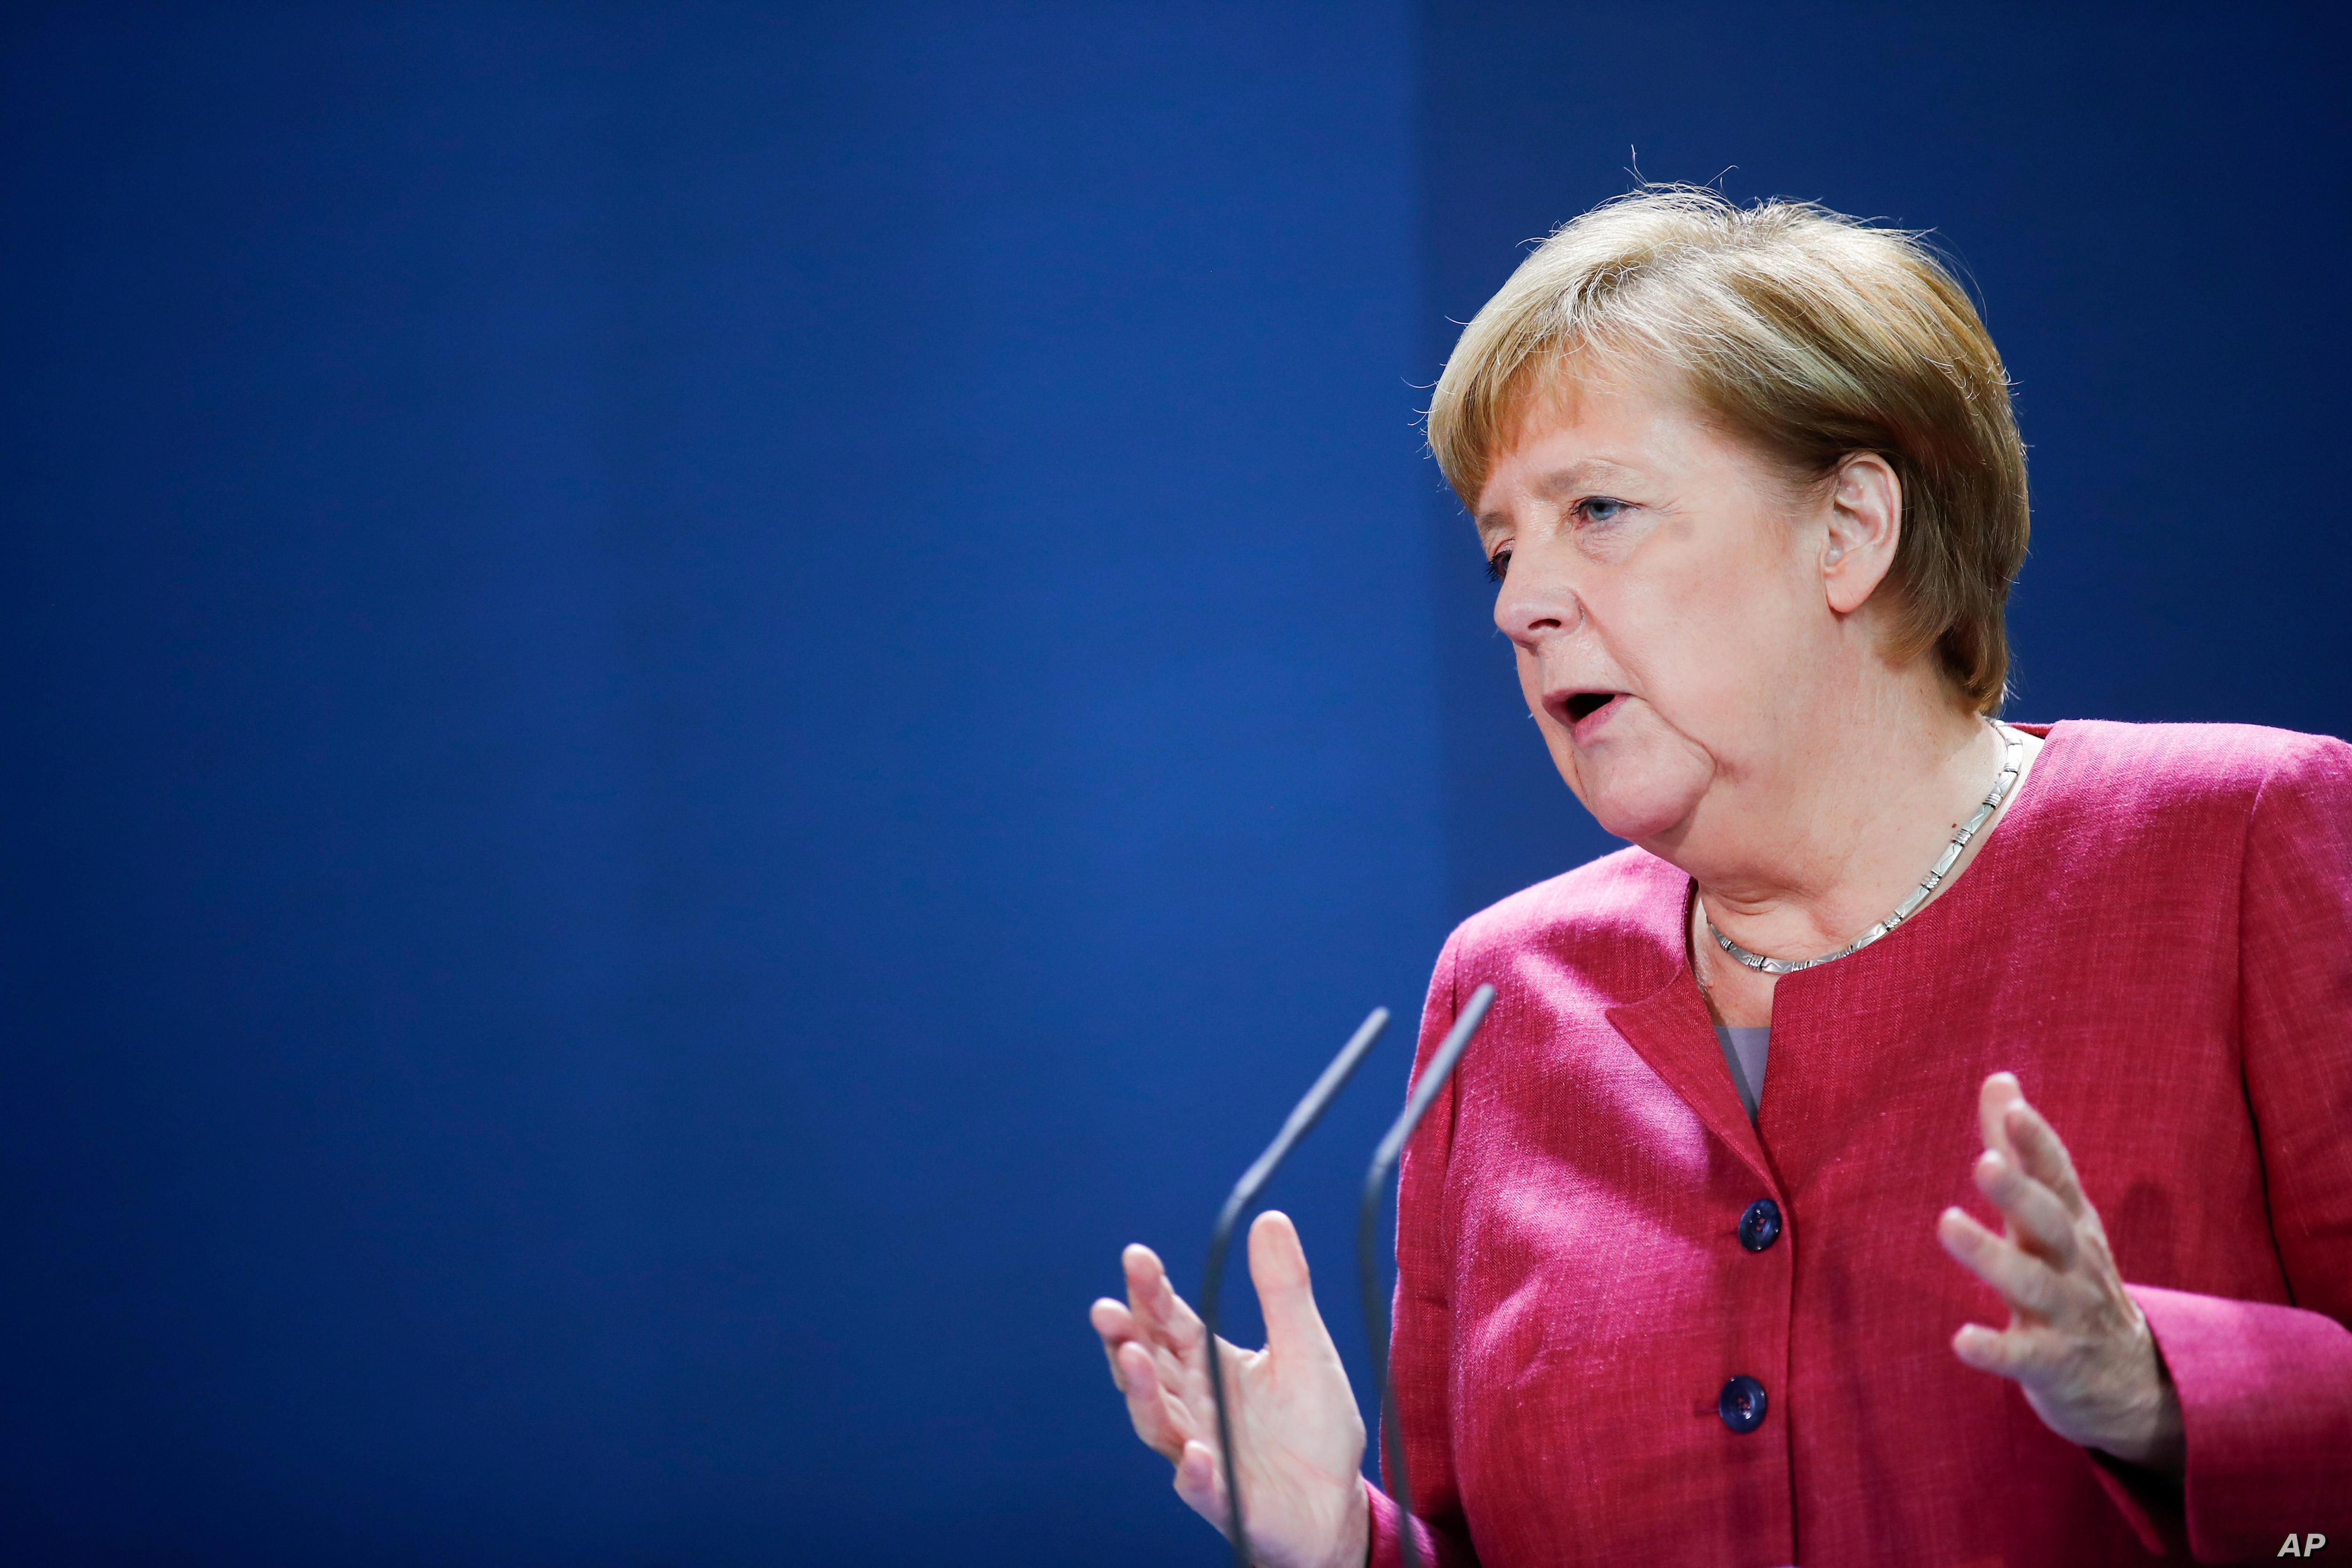 Germany S Merkel Brexit Trade Deal In Everyone S Interest Voice Of America English